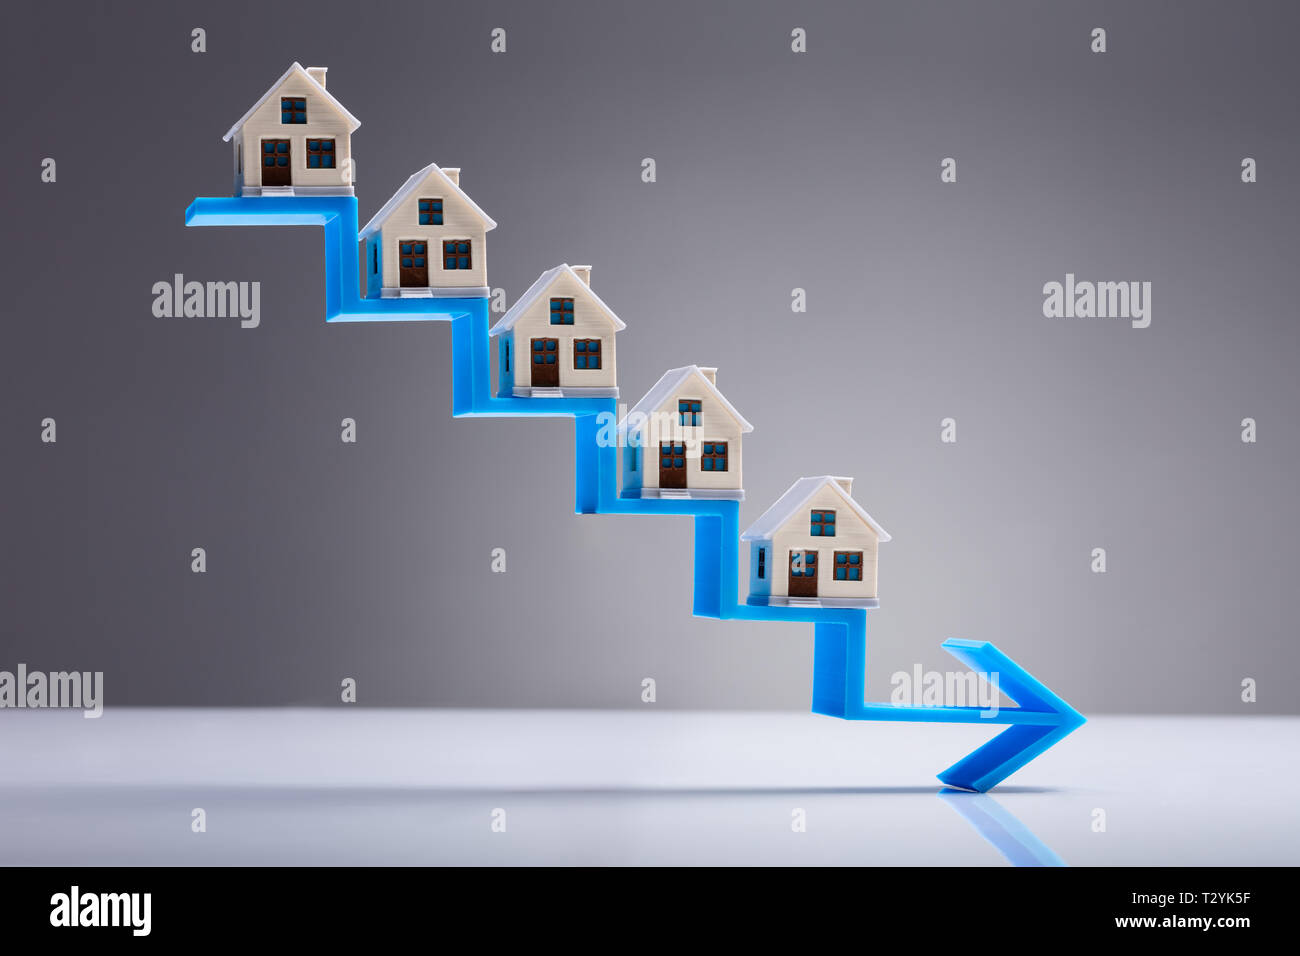 House Models On The Decreasing Staircase Blue Arrow Against Gray Background - Stock Image